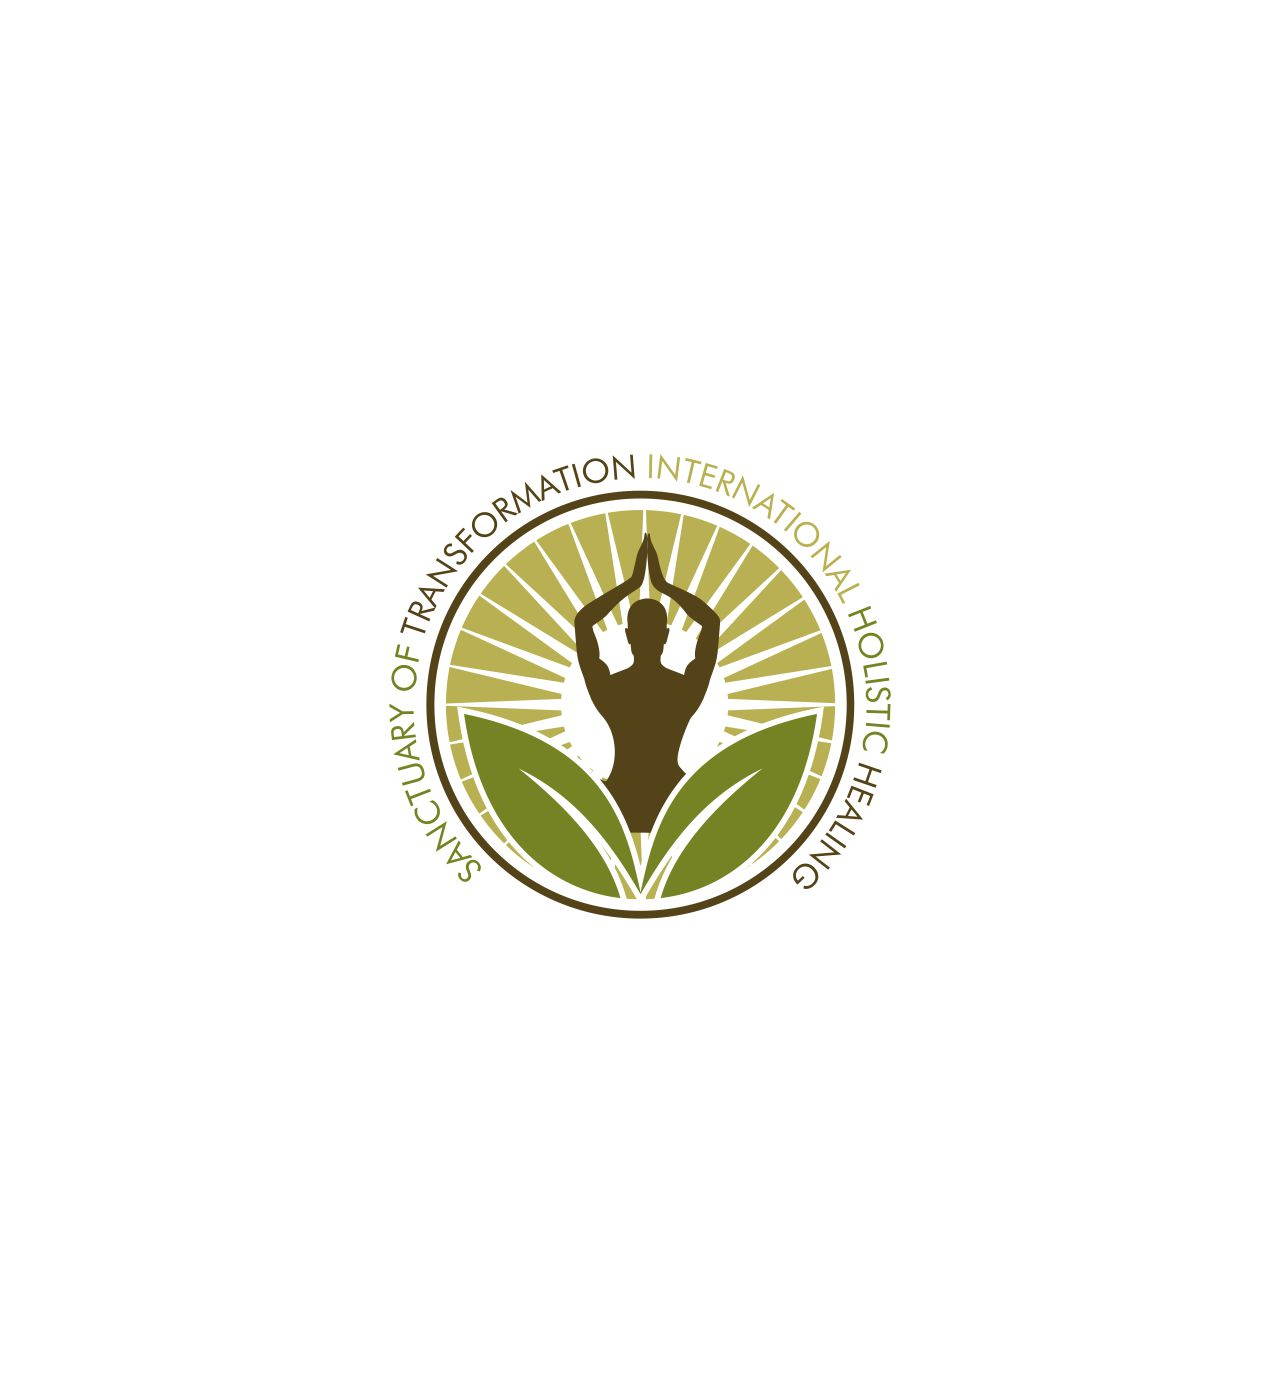 Logo Design by Raymond Garcia - Entry No. 9 in the Logo Design Contest Fun Logo Design for Sanctuary of Transformation.